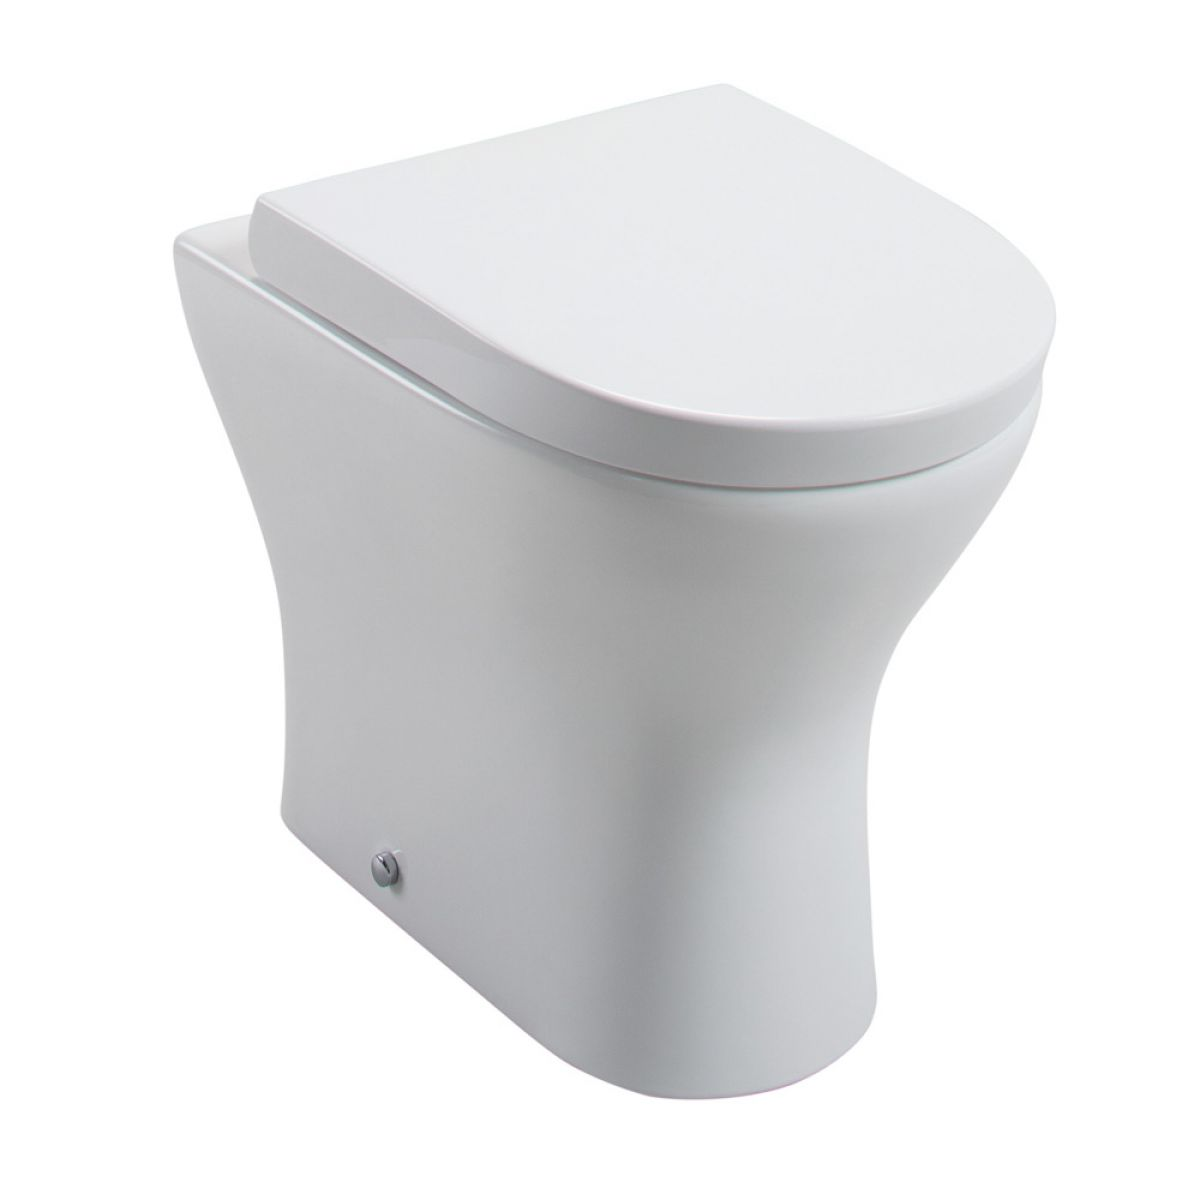 Cassellie Spek Back to Wall Toilet Wrapover Seat